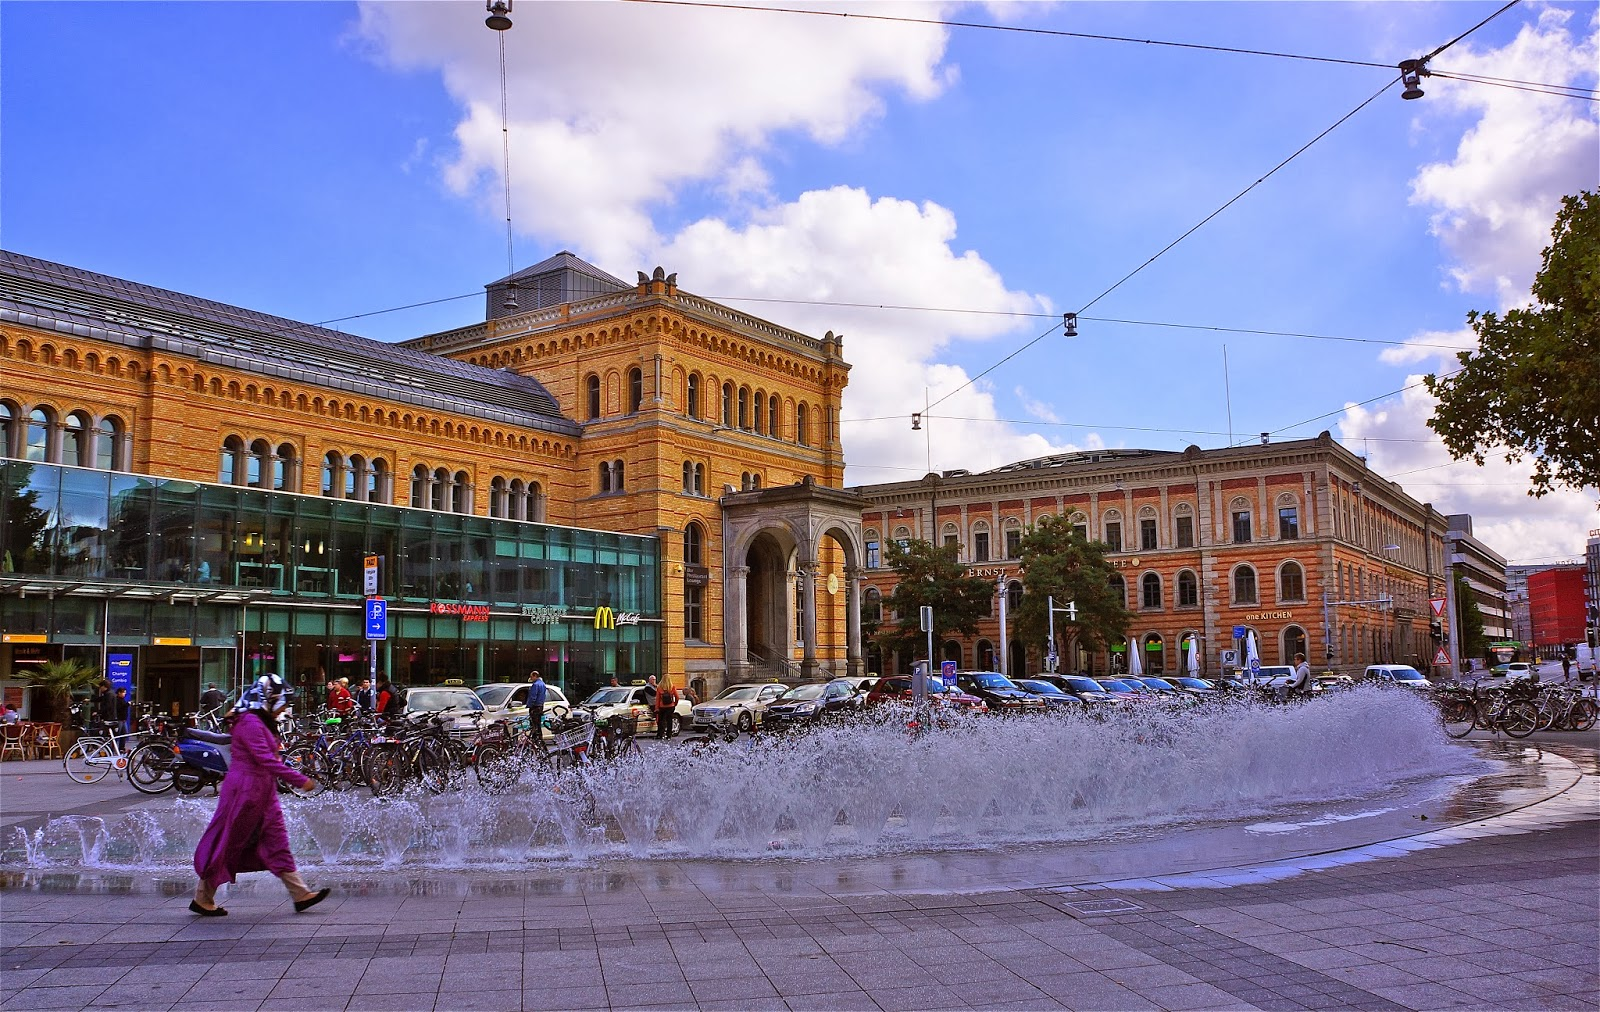 Picture of Hauptbahnhof Hannover, Germany.